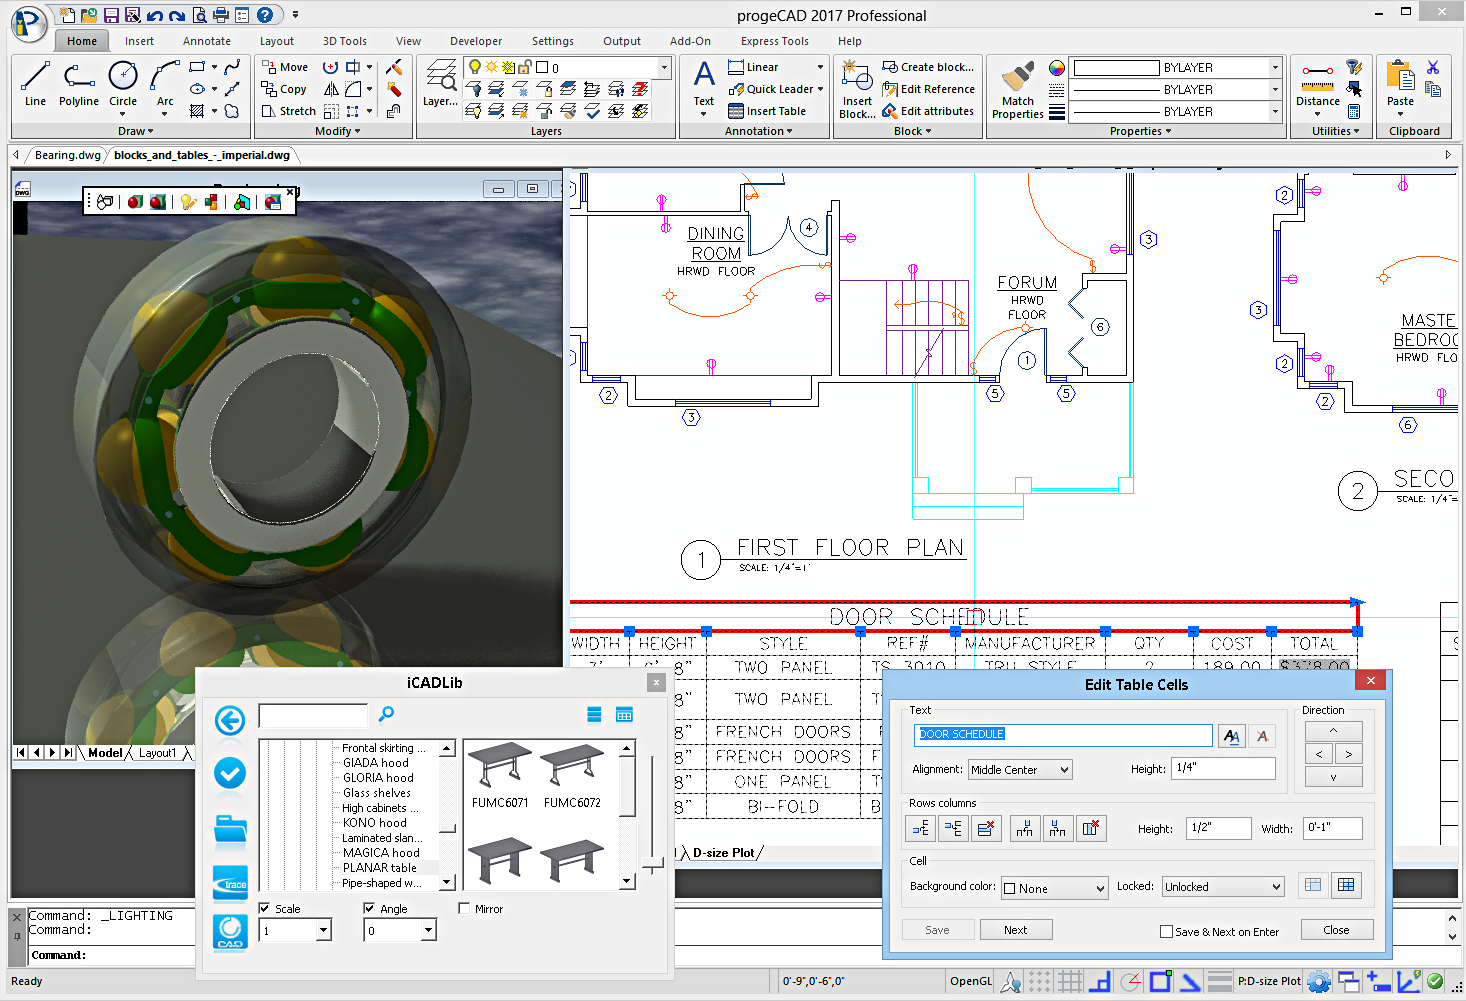 progeCAD 2018 Professional CAD Software Review for Windows